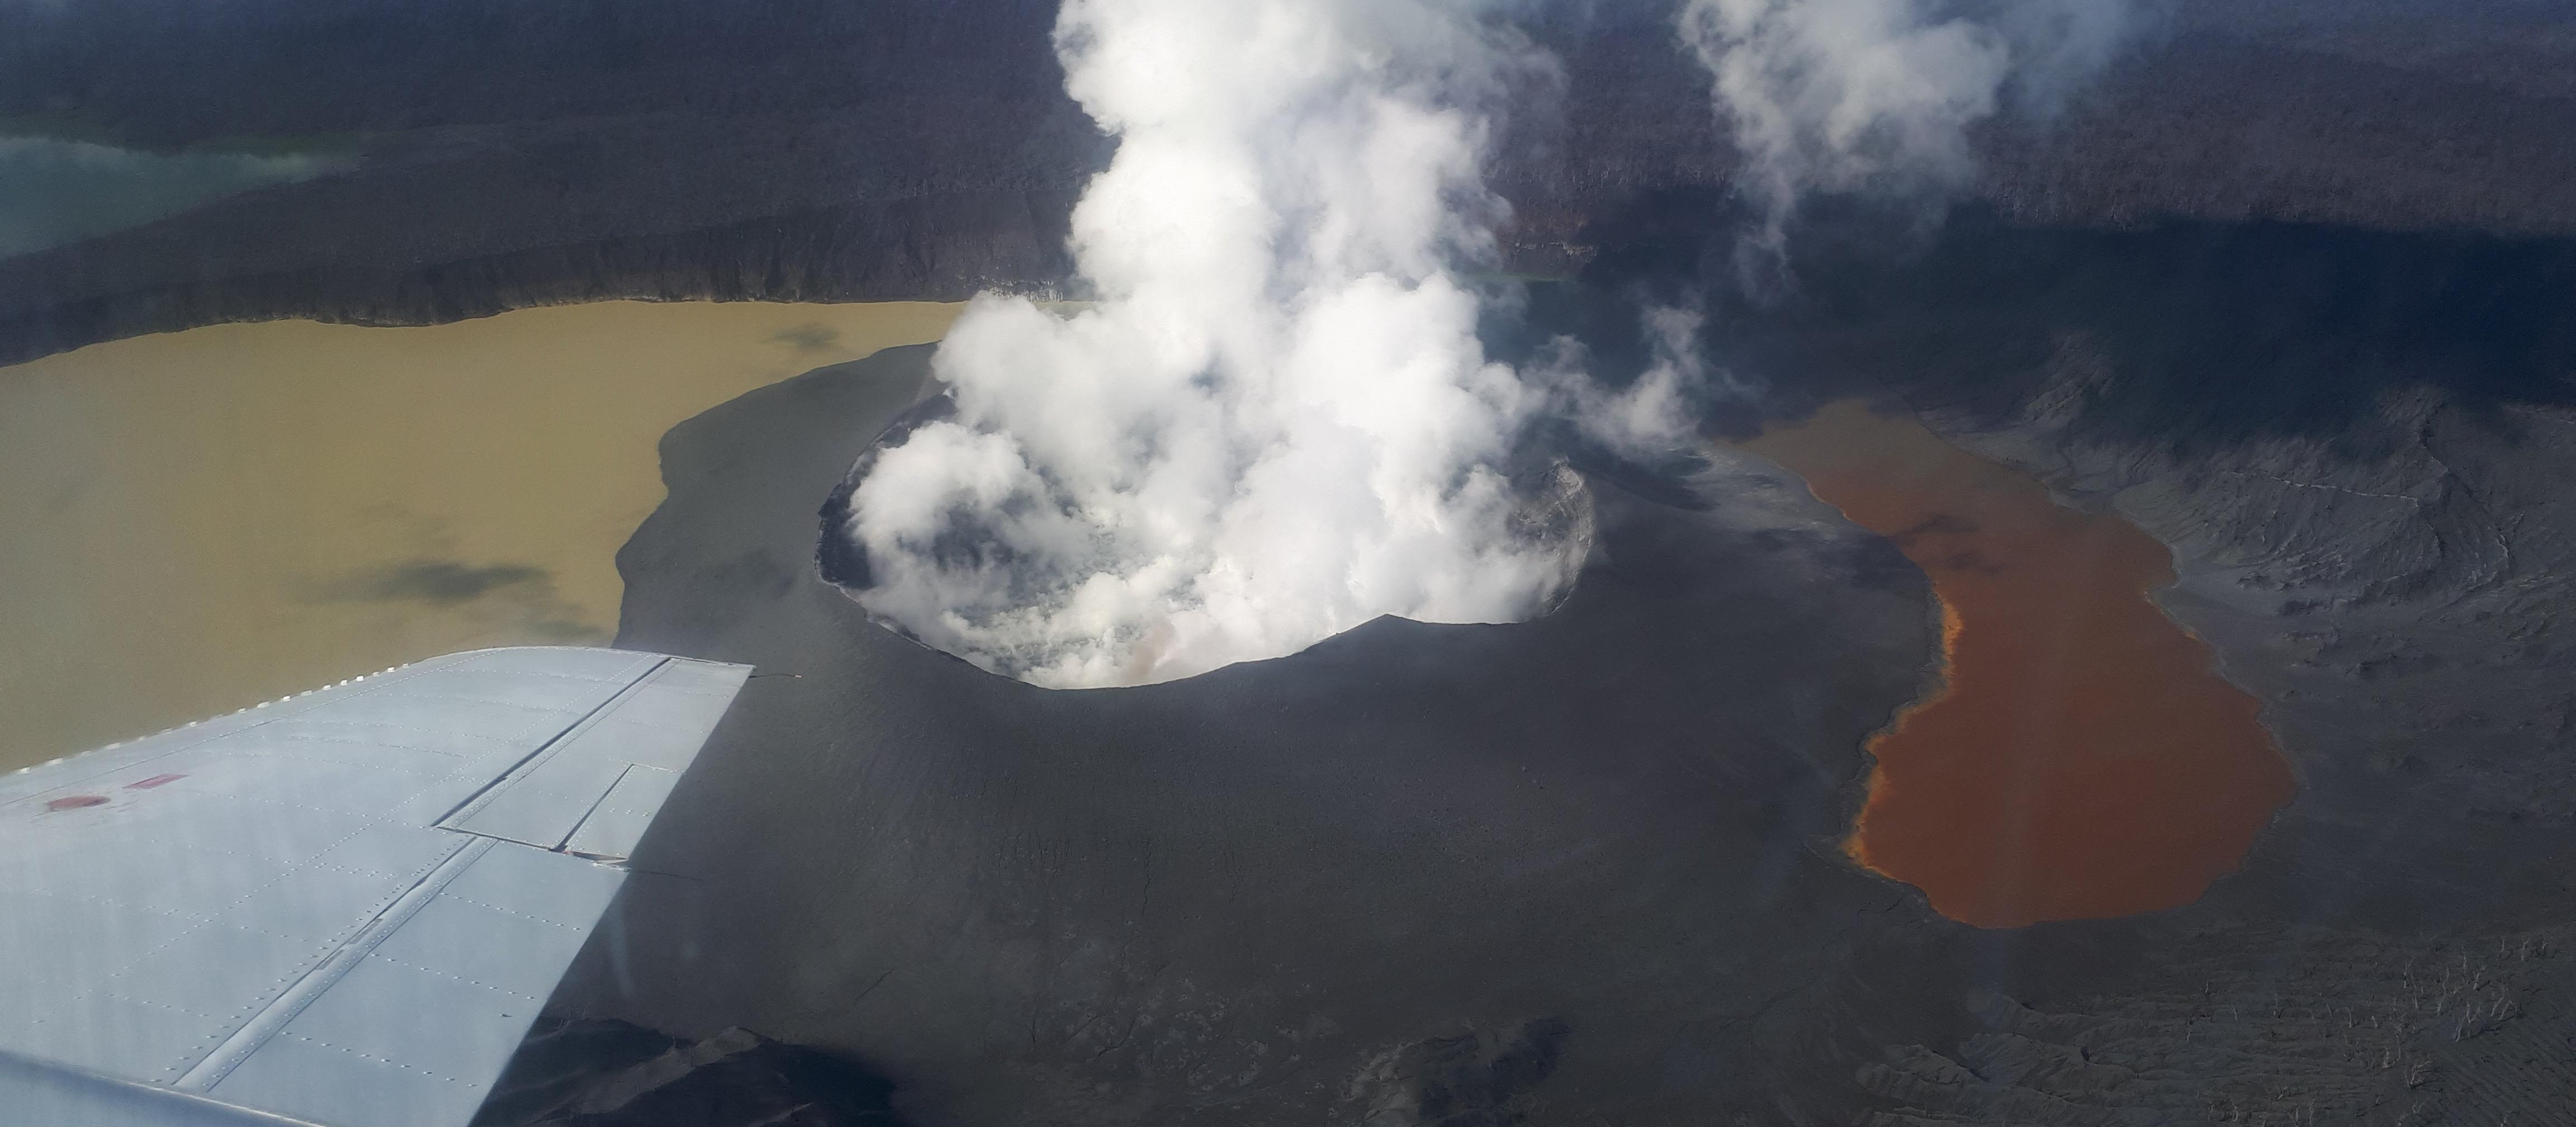 Ambae volcano and Lake Voui on 21 April 2018, Ambae Island, Vanuatu. The lake has been split into two due to the growth of the new volcanic cone. The visible landscape is covered with thick ash deposits. The dead trees in the lower right were killed over a decade ago during another eruptive episode. Photo credit: Natalia Deligne.